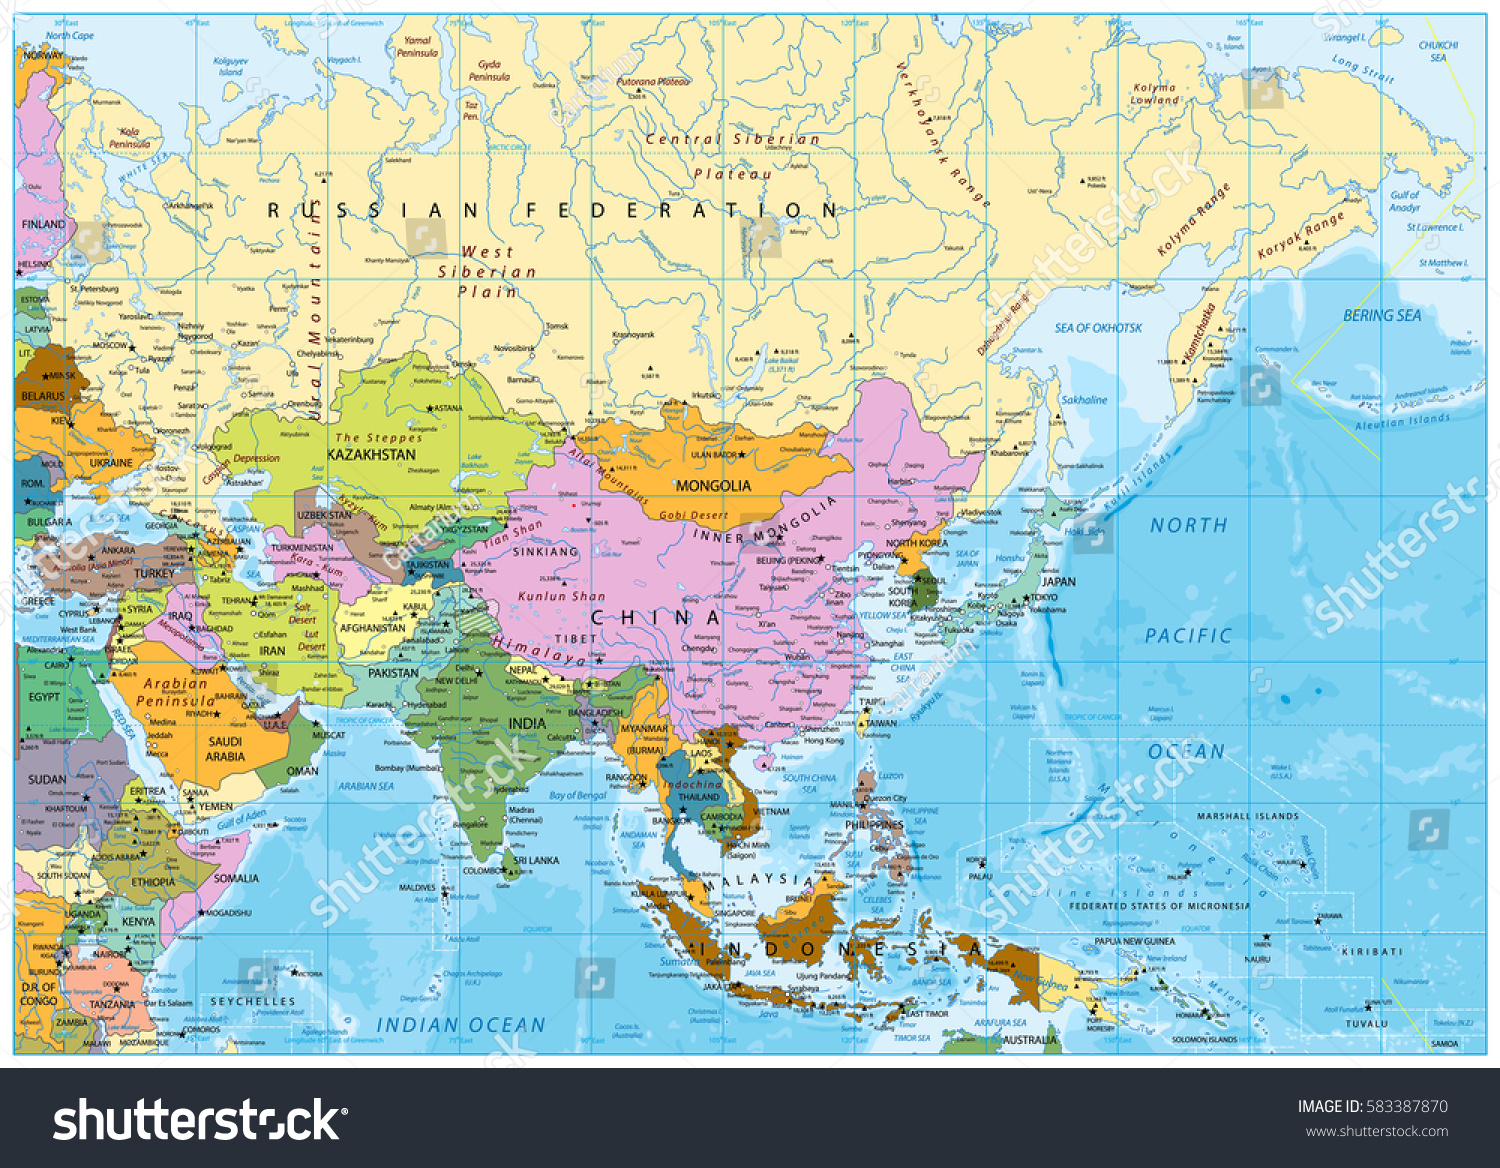 Asia political map rivers lakes elevations stock vector 2018 asia political map with rivers lakes and elevations gumiabroncs Gallery